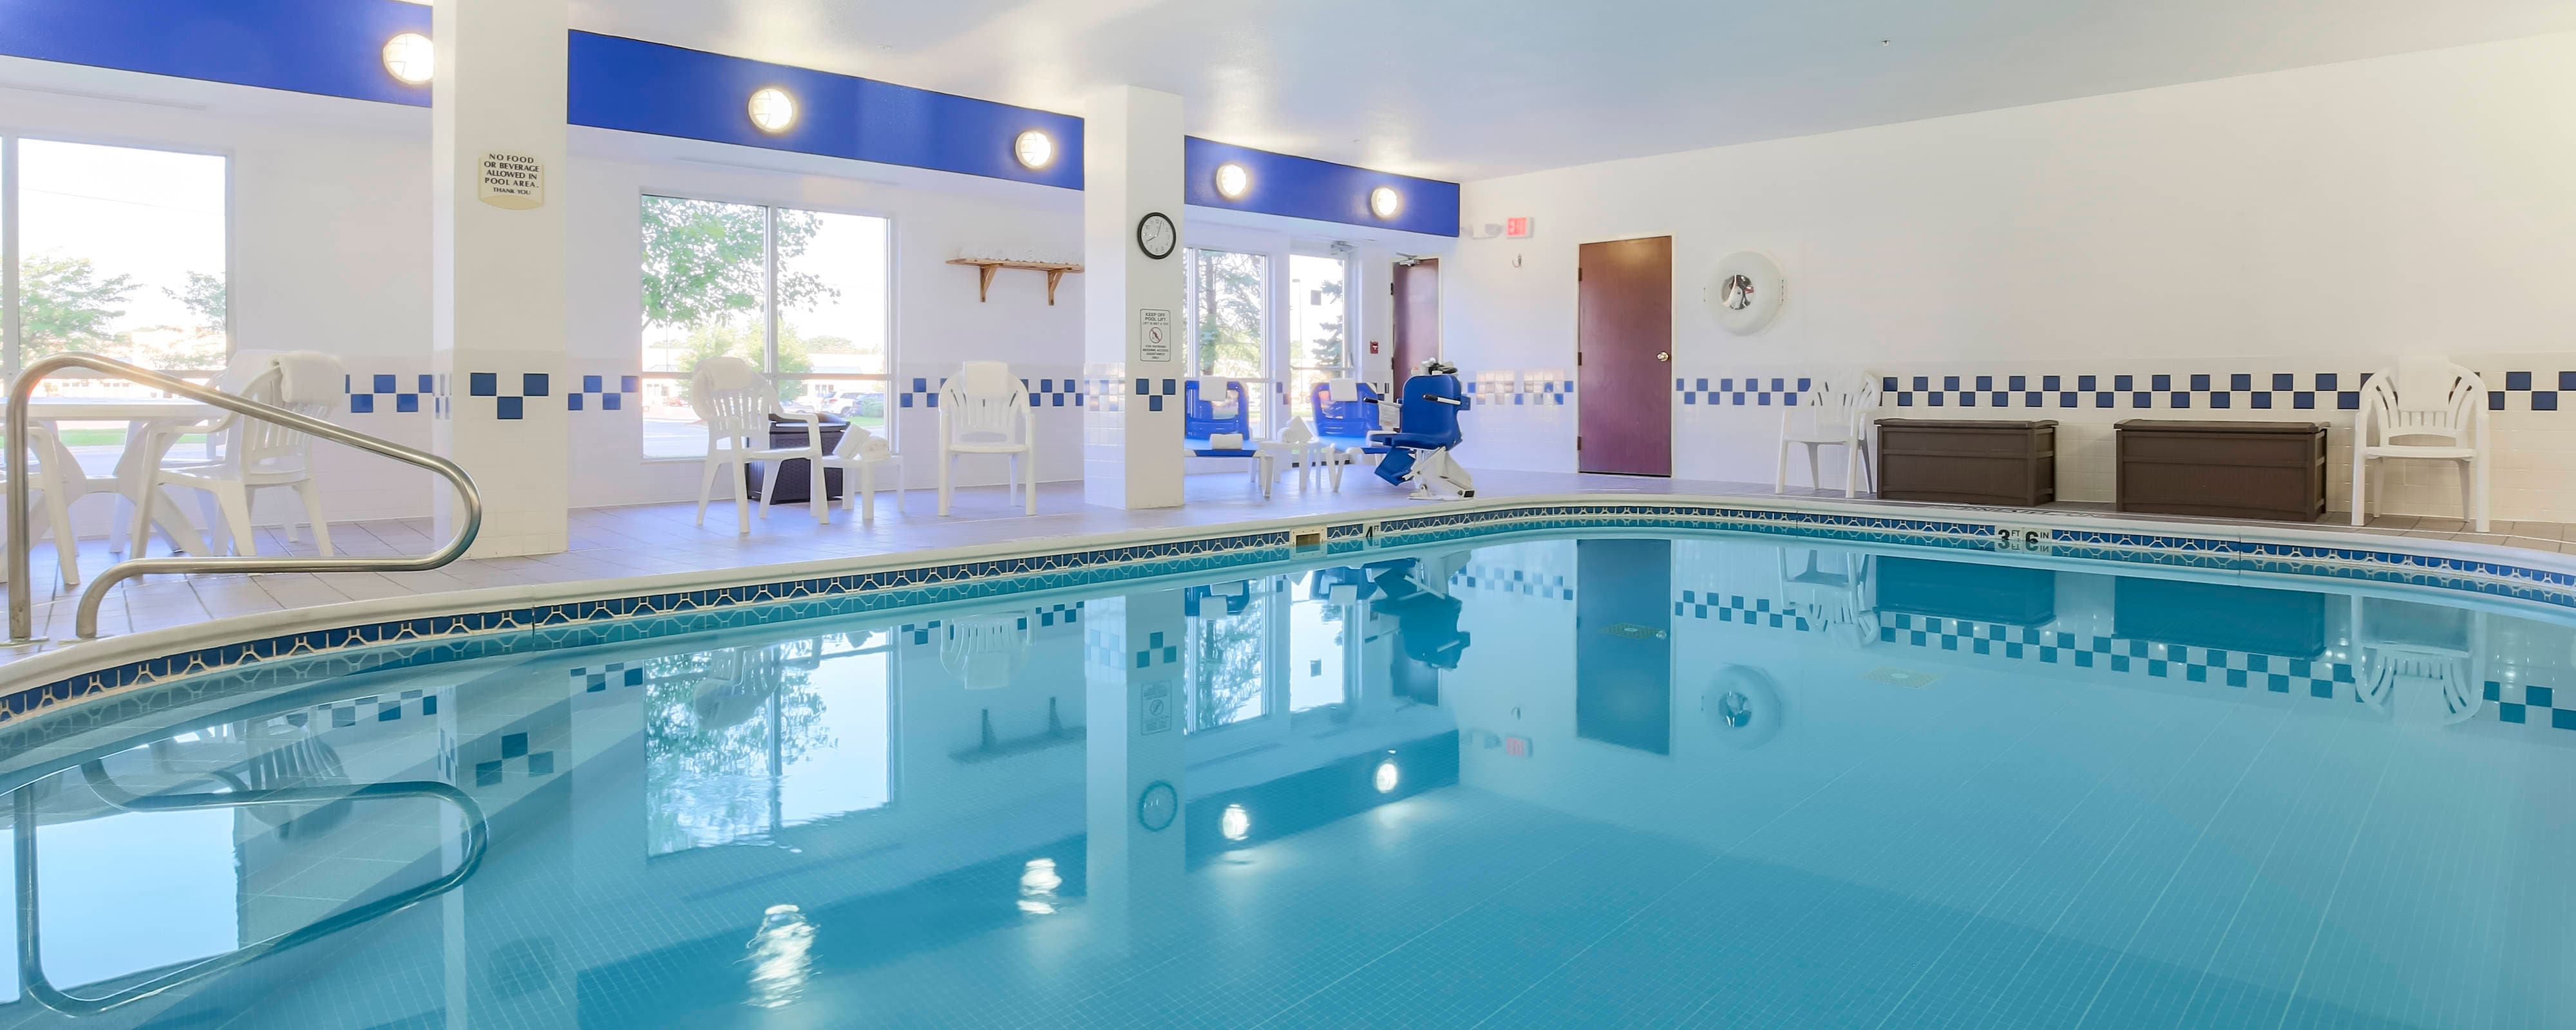 Bay City Michigan Indoor Pool